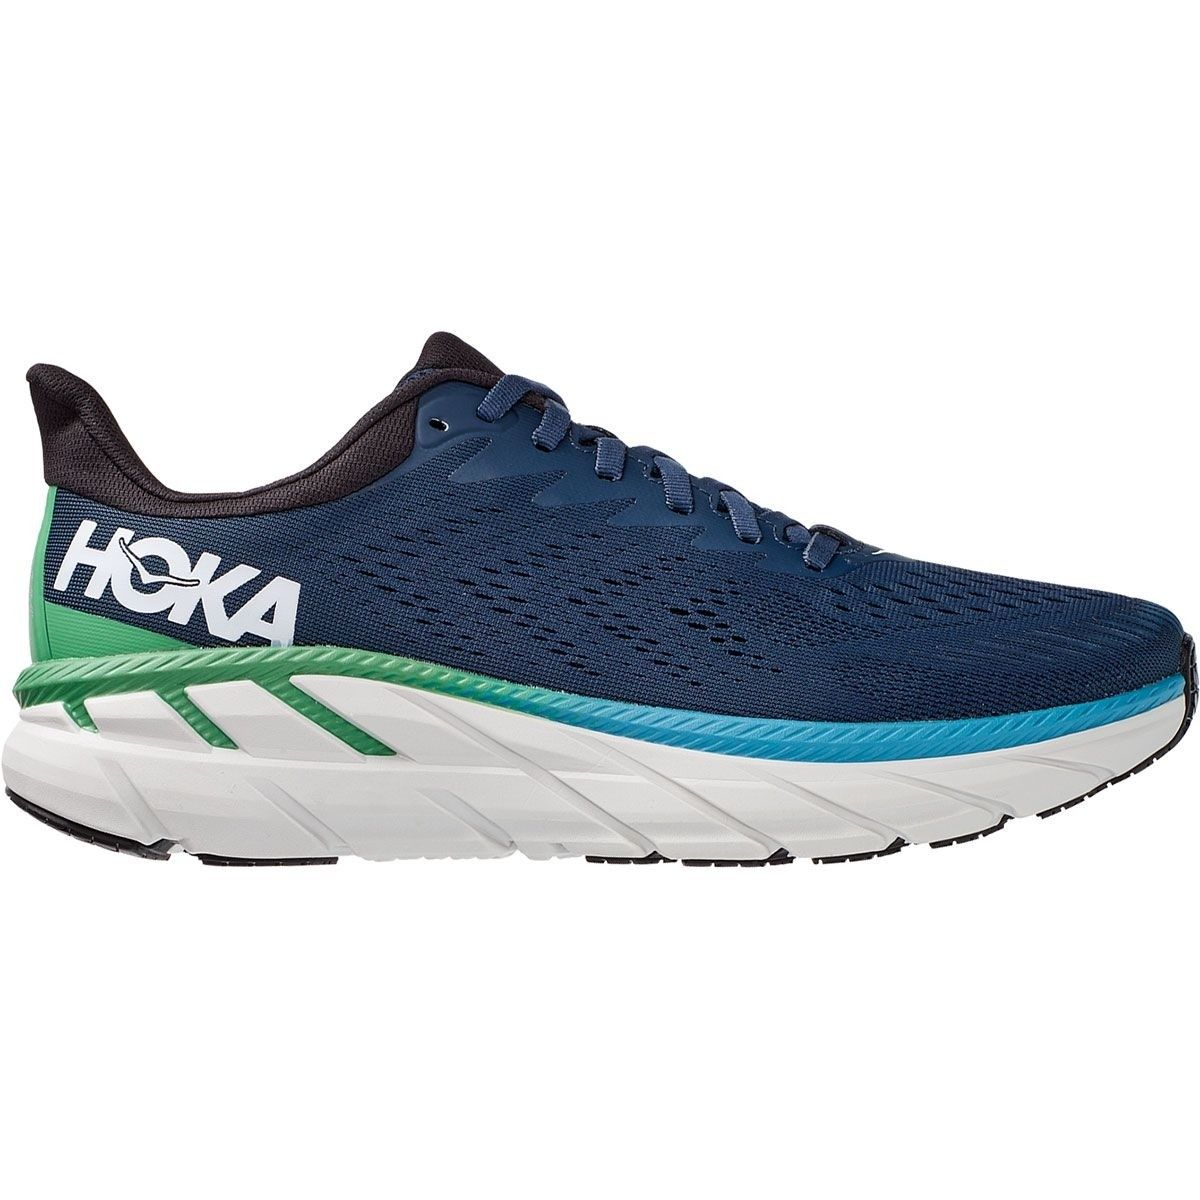 Hoka One One Clifton 7 herre